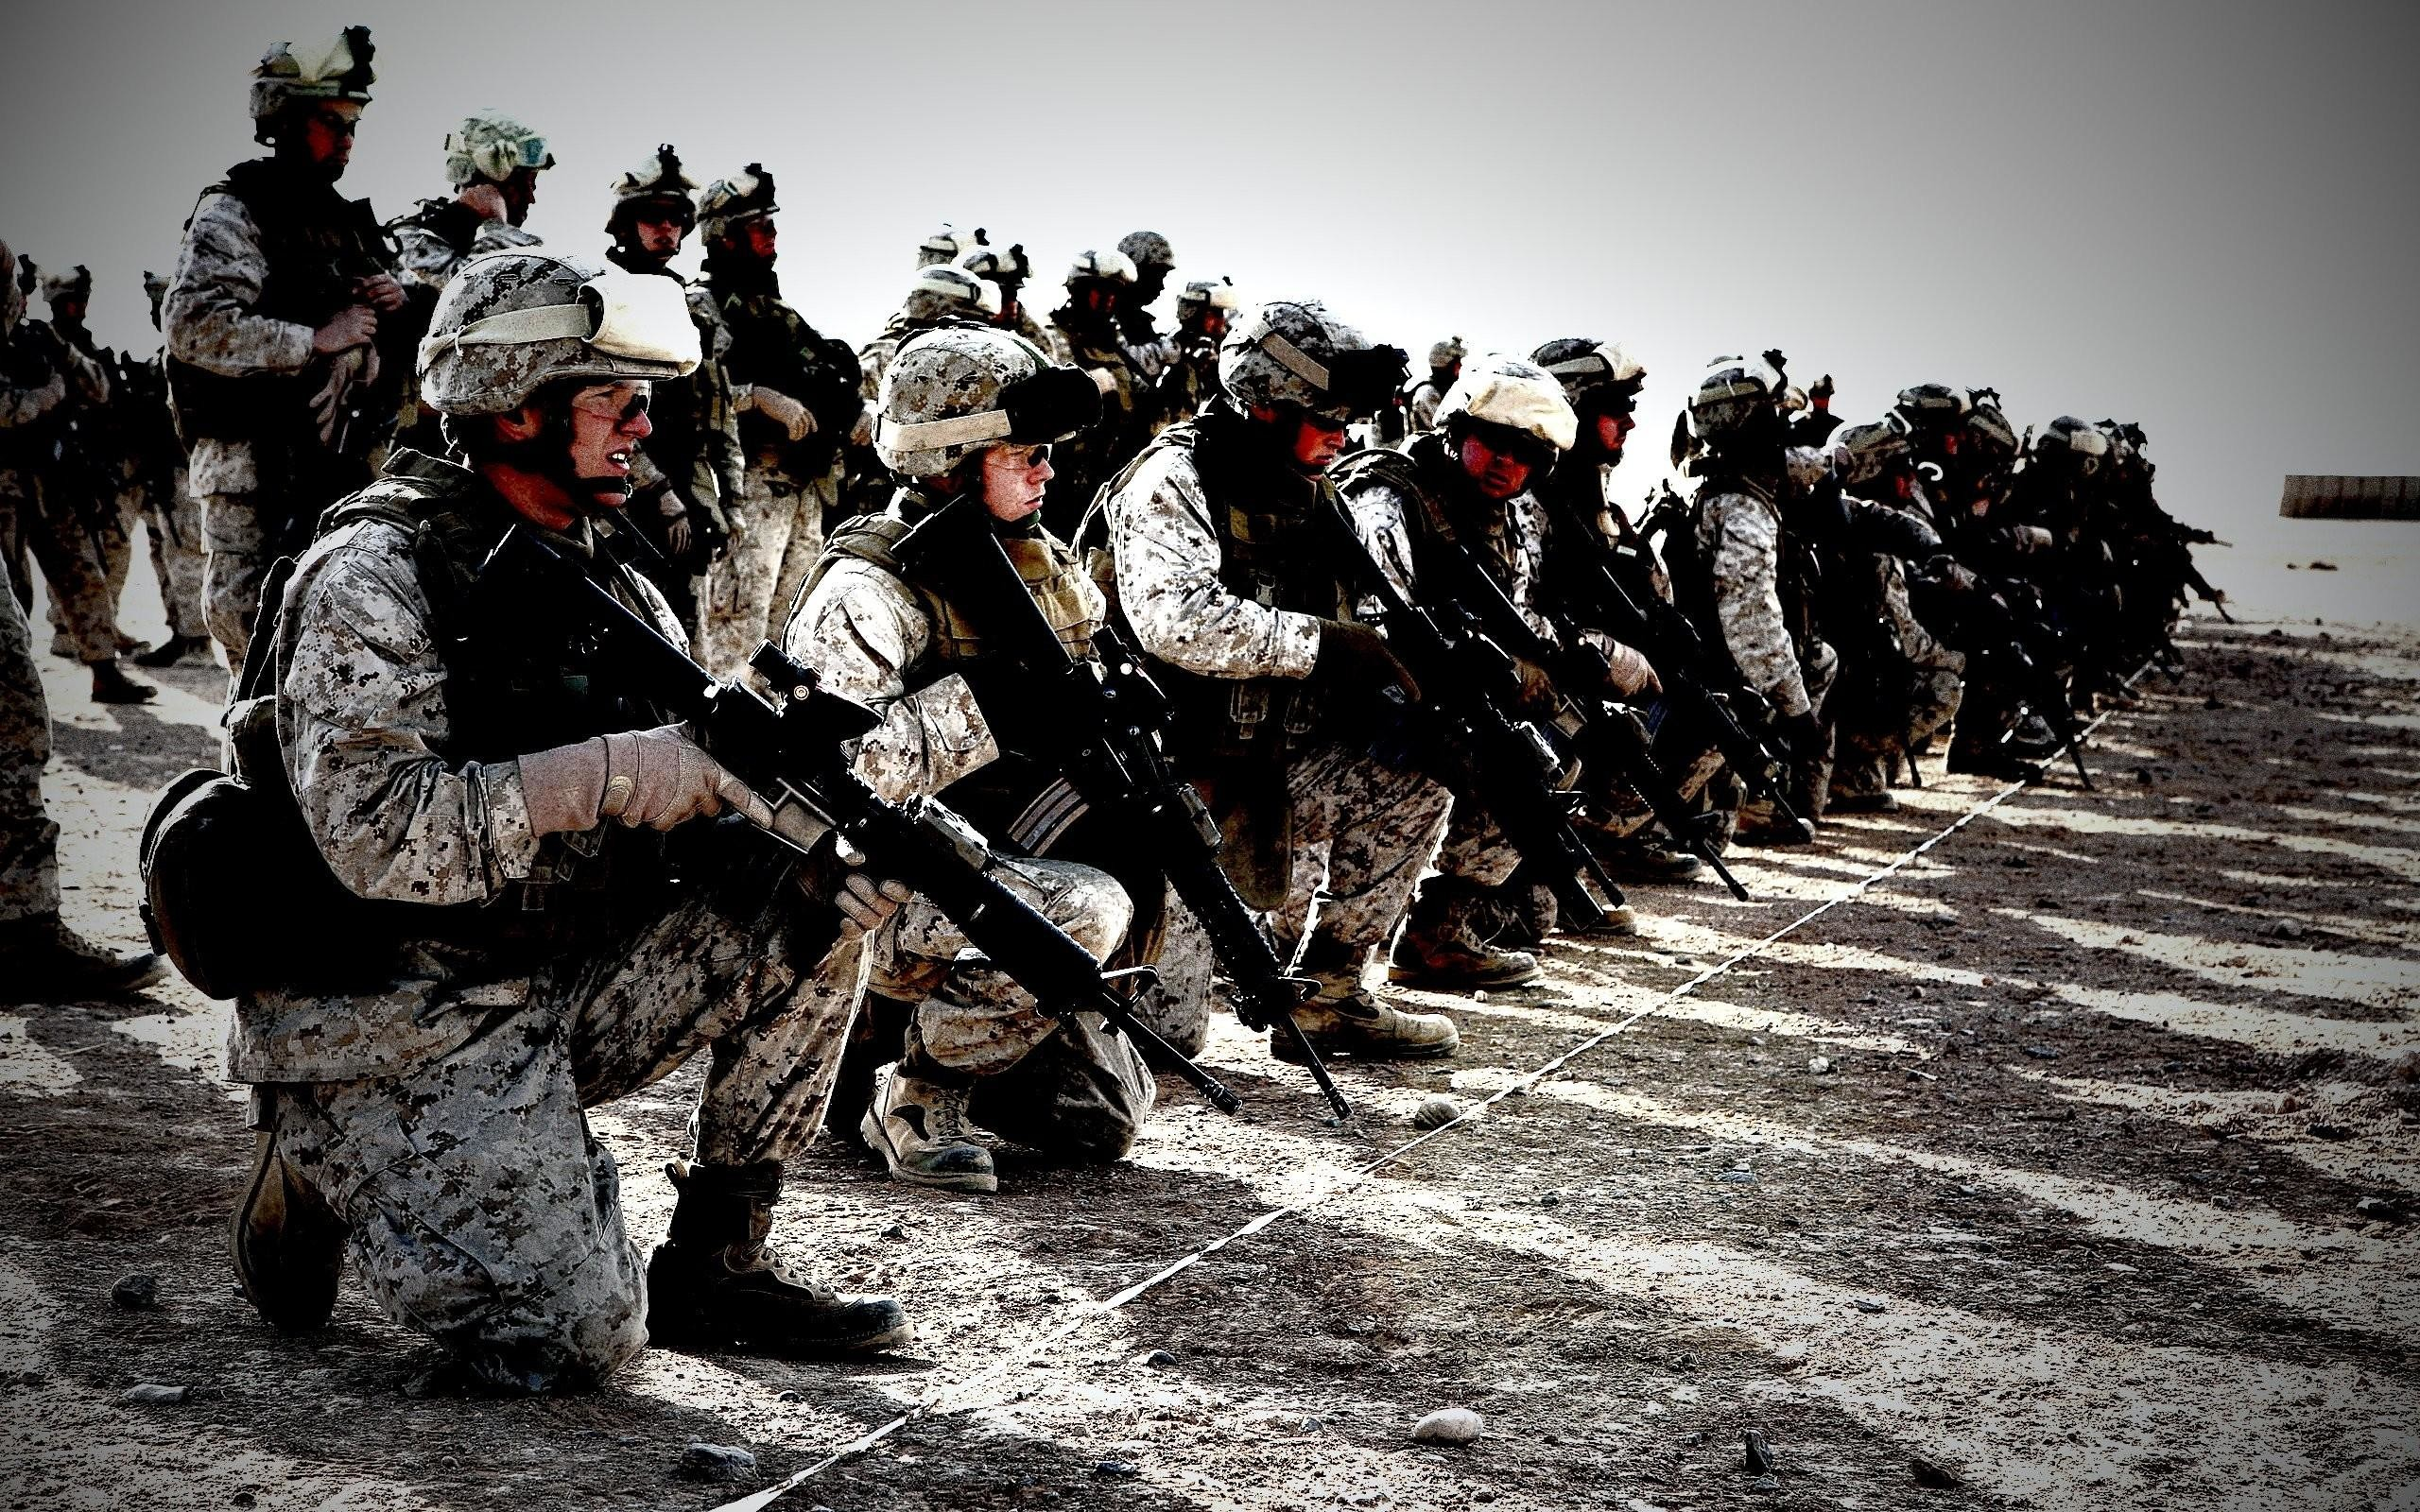 2560x1600 military wallpaper for android #507528